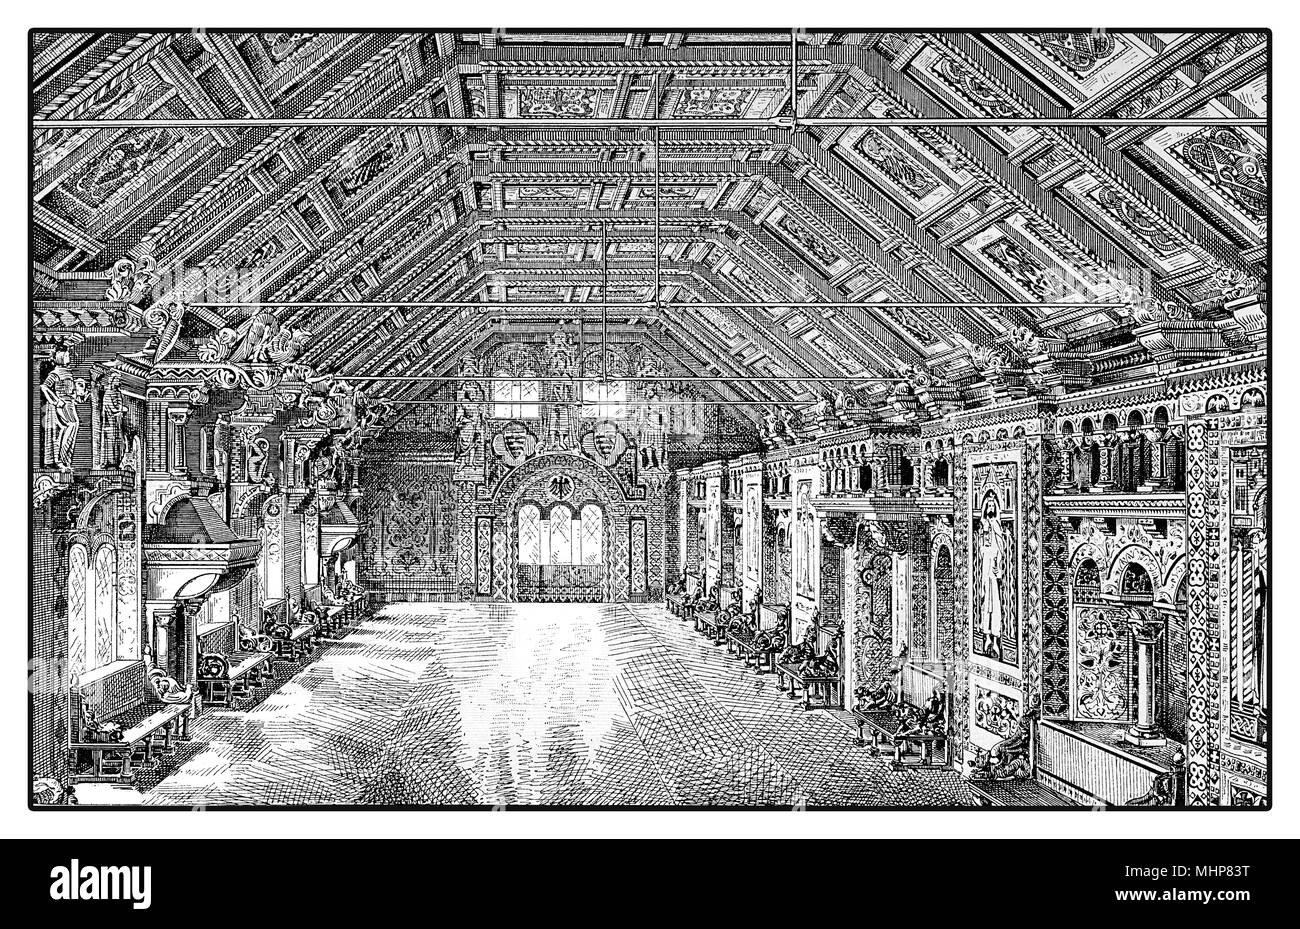 Vintage engraving of the fest und weapon hall of Wartburg castle in Thuringia - Germay  built in XI century - Stock Image